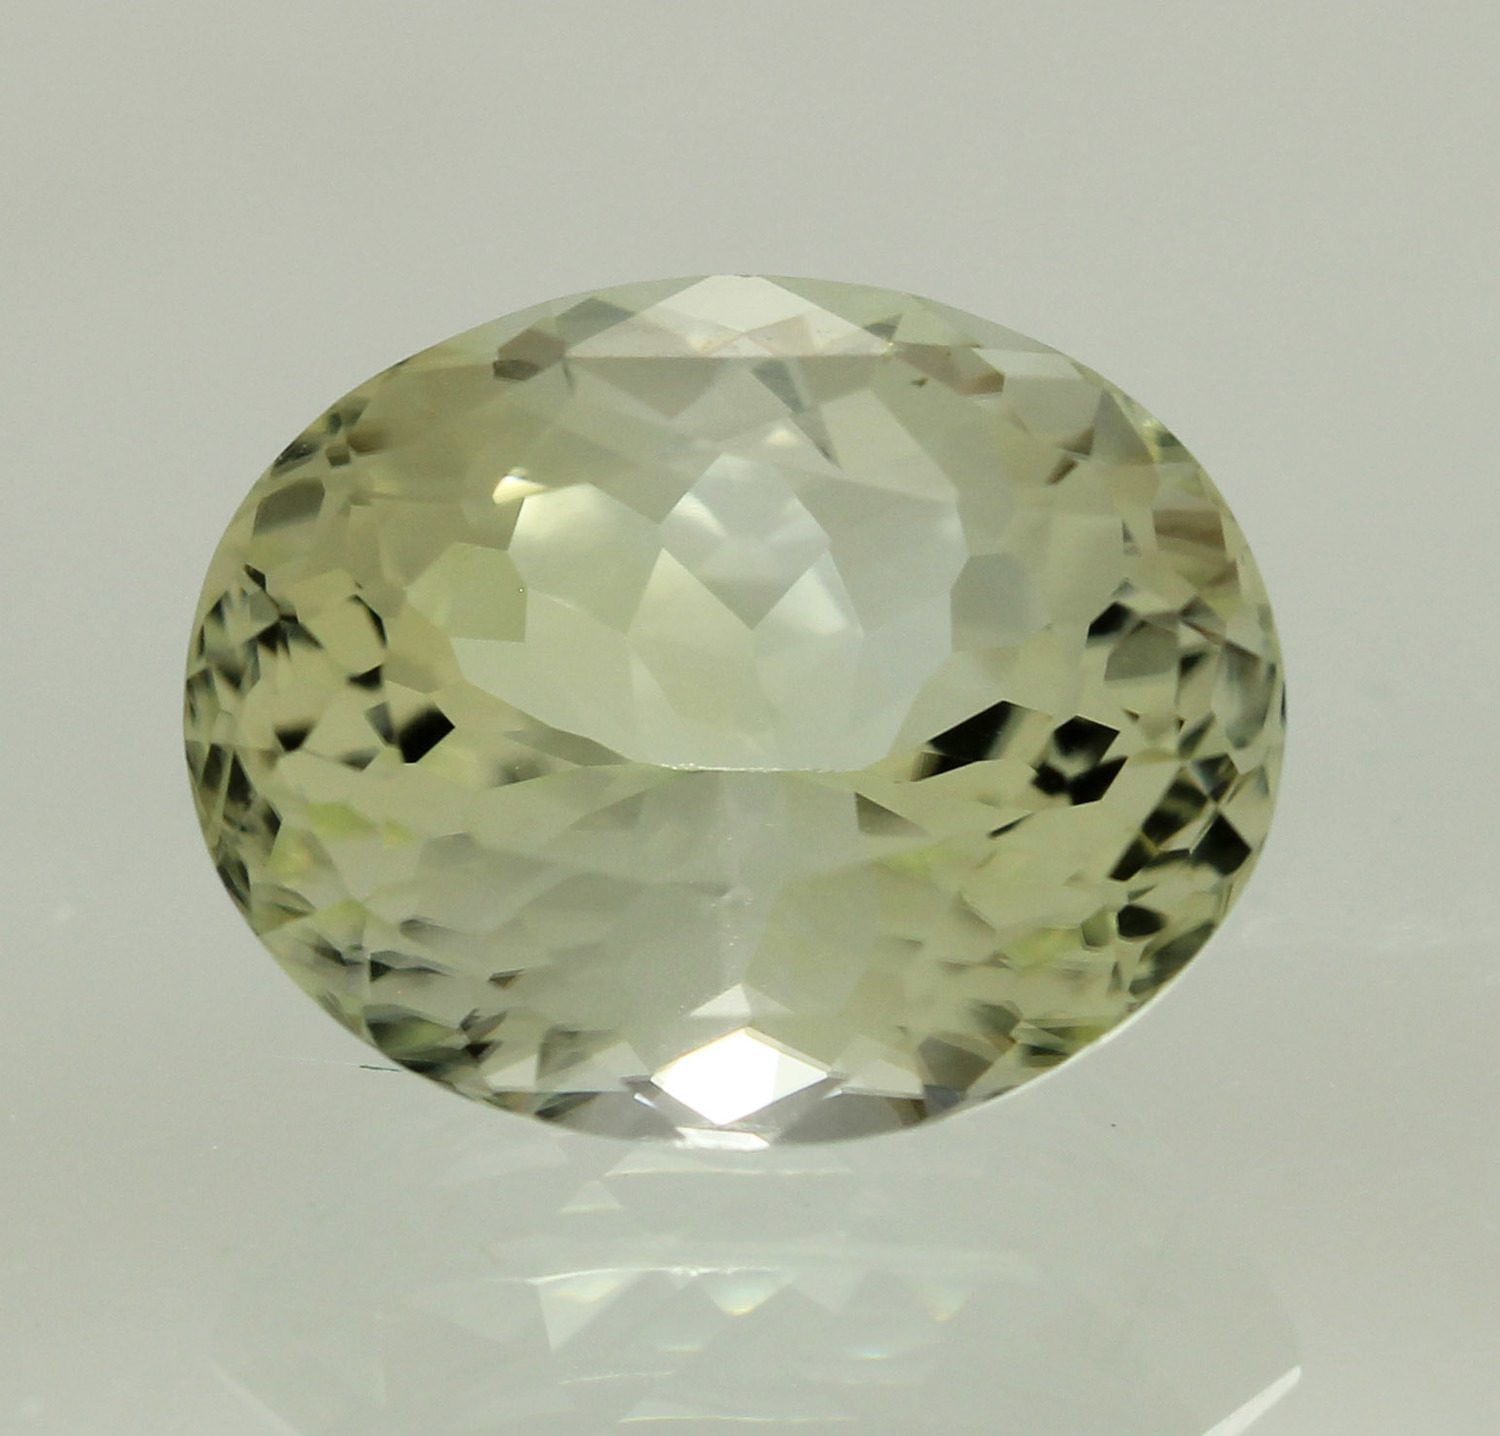 Datolite Value, Price, and Jewelry Information